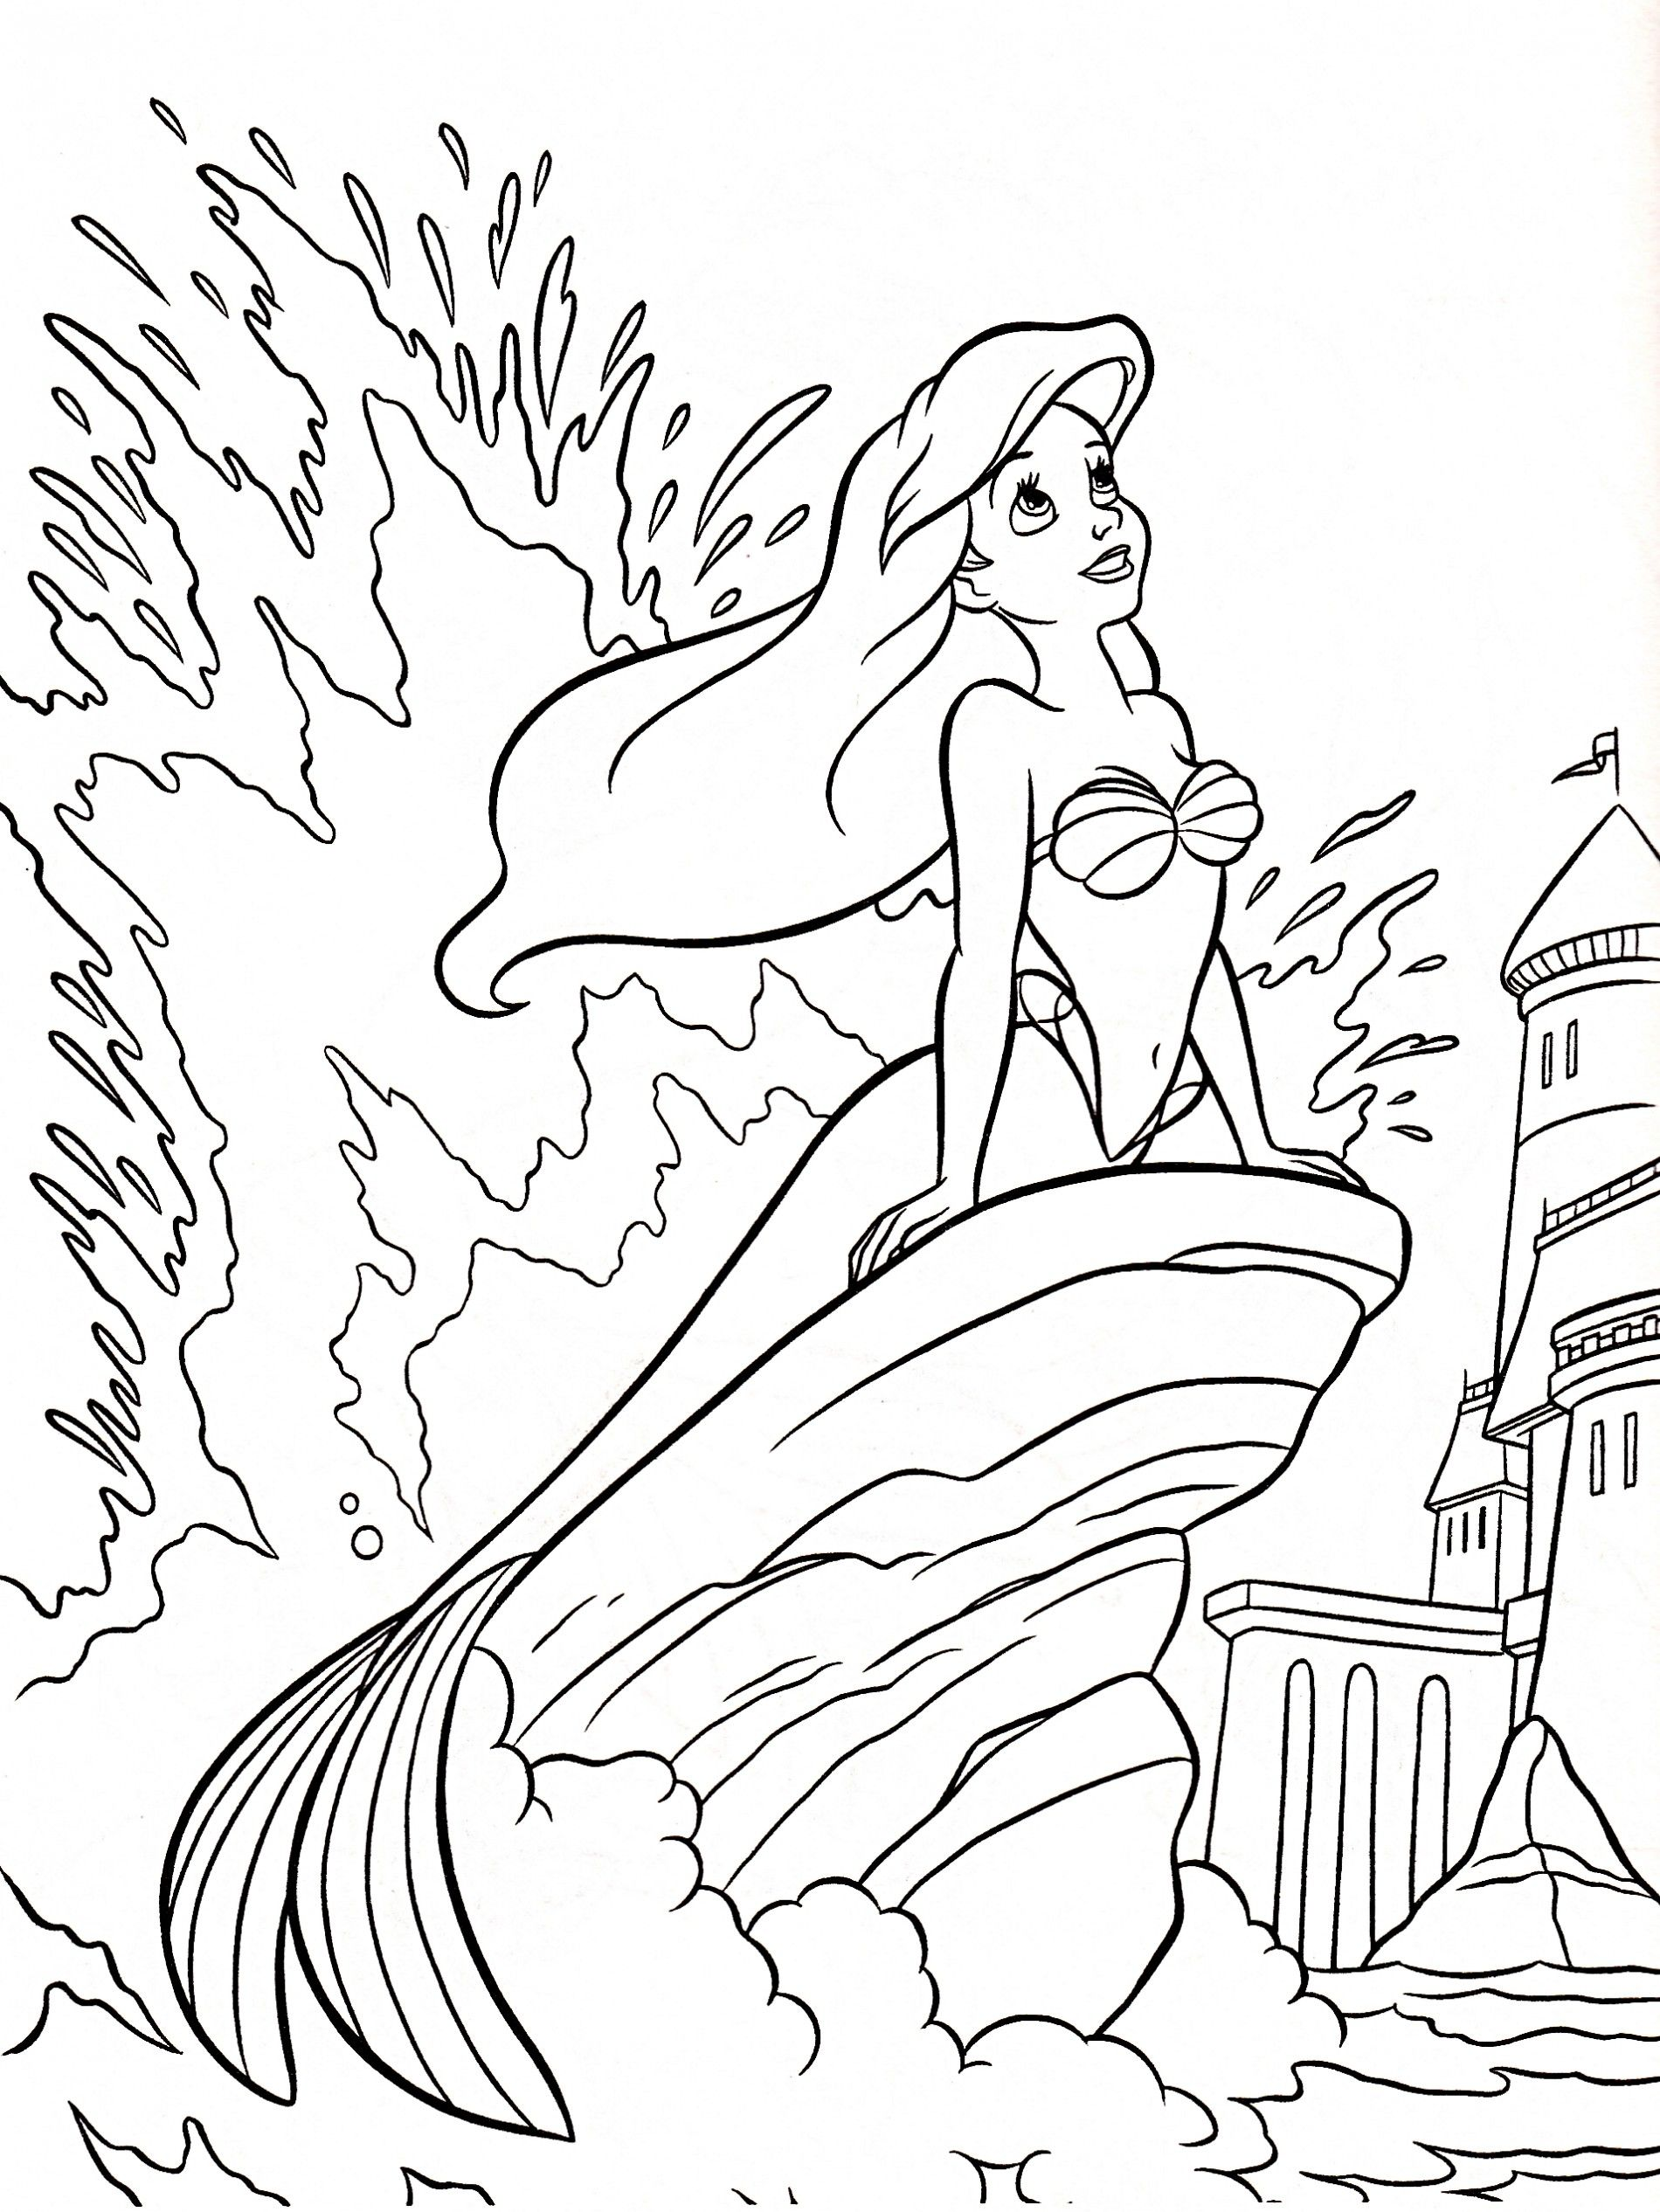 Mermaid Colouring Pages Pdf Colouring Mermaid In 2020 Ariel Coloring Pages Disney Princess Coloring Pages Princess Coloring Pages